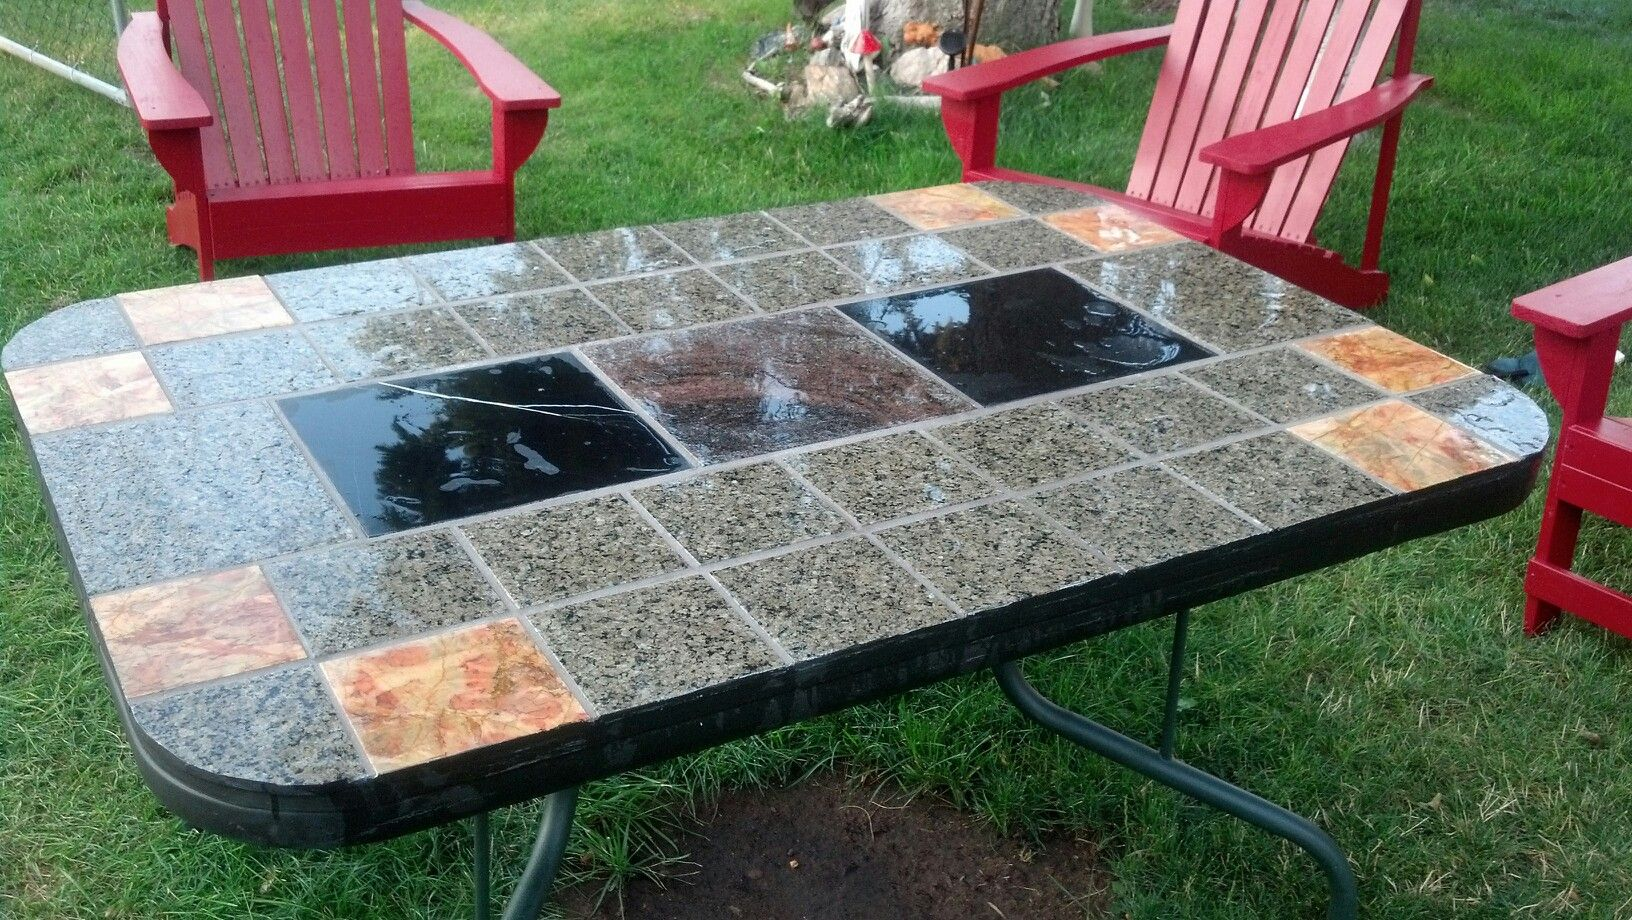 We Recycled A Patio Table That Broke Its Glass During A Wind Storm Mosaic Granite Tile Redo Outdoor Furniture Outdoor Diy Projects Diy Patio Table